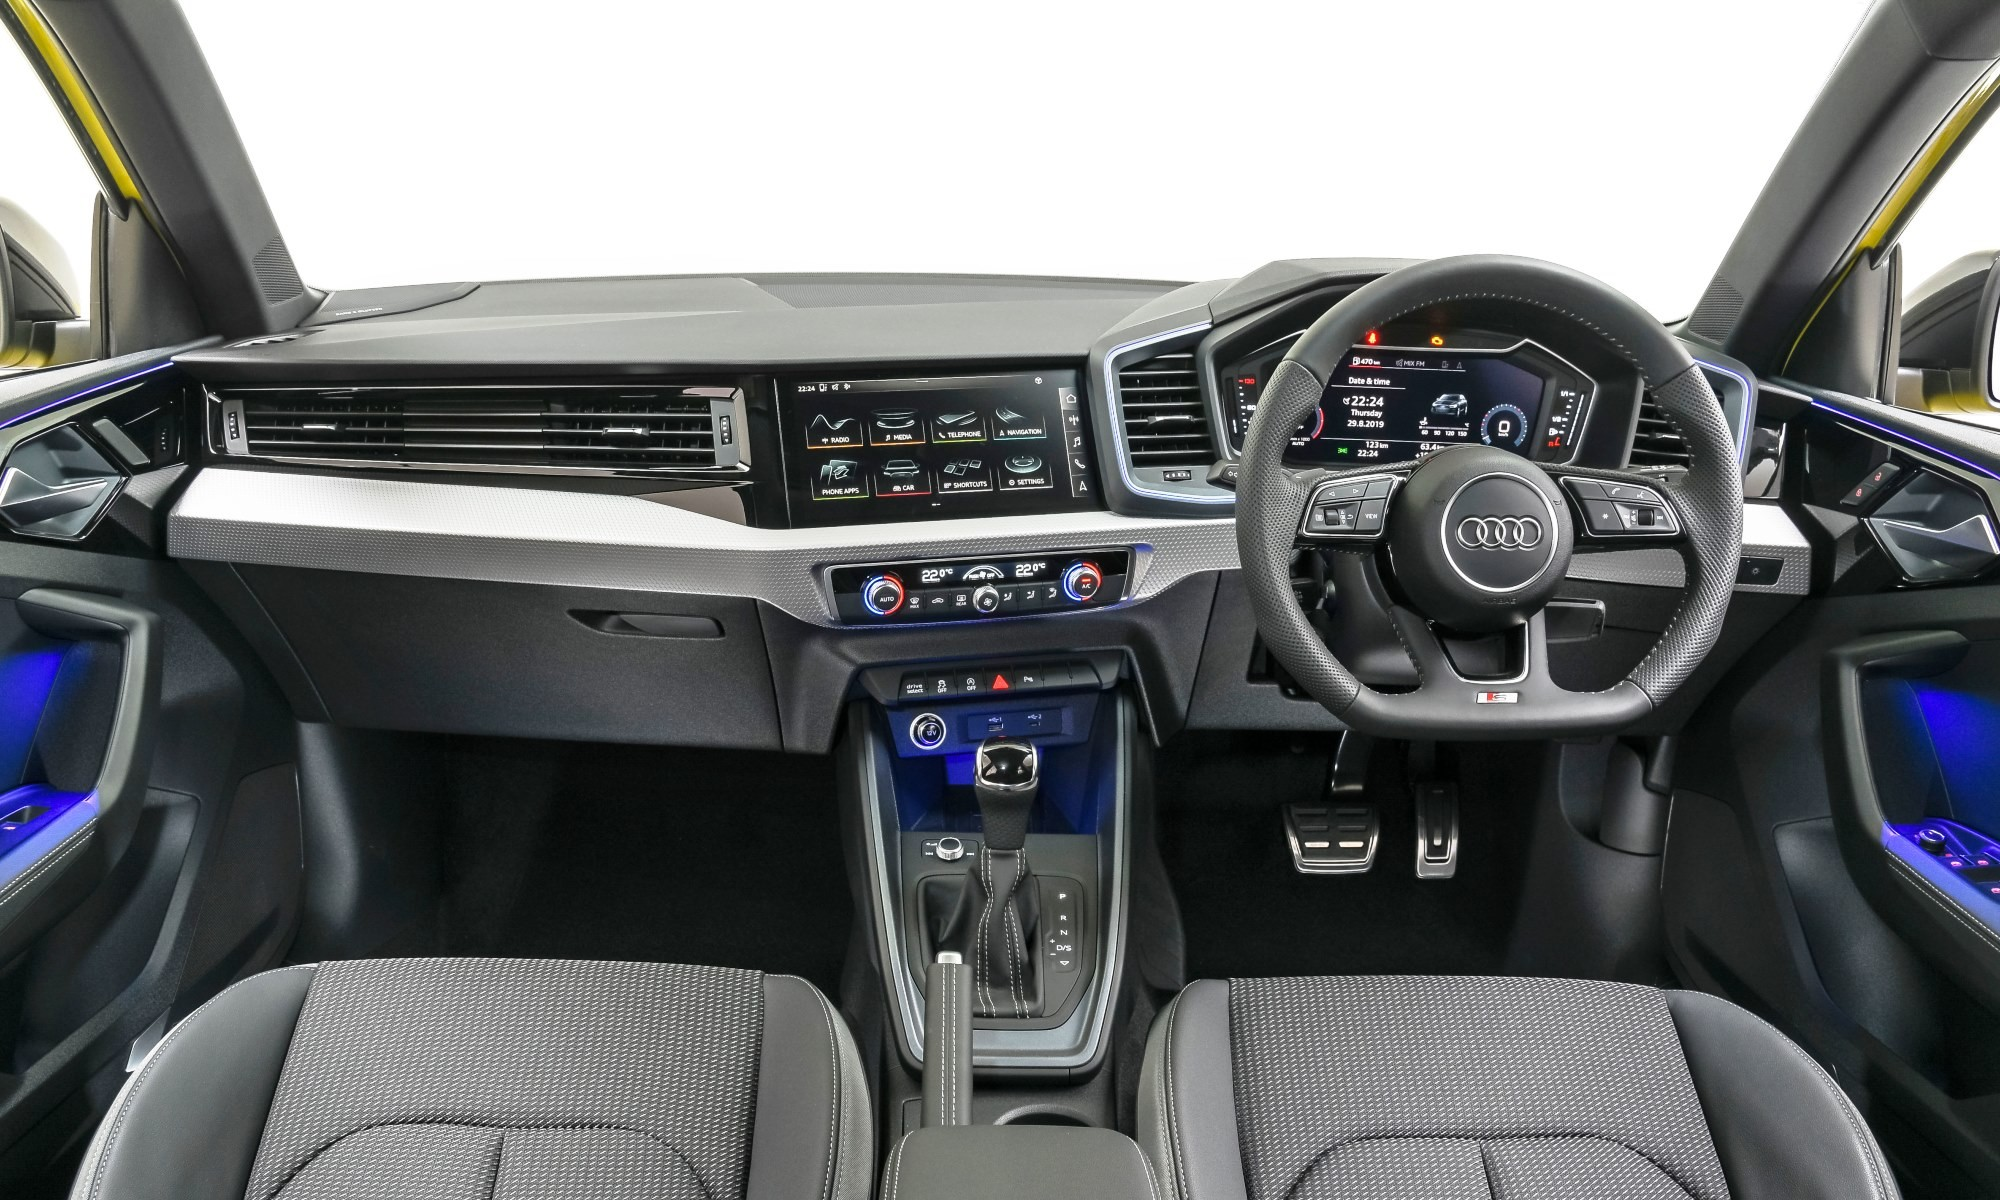 Audi A1 35 TFSI Advanced interior